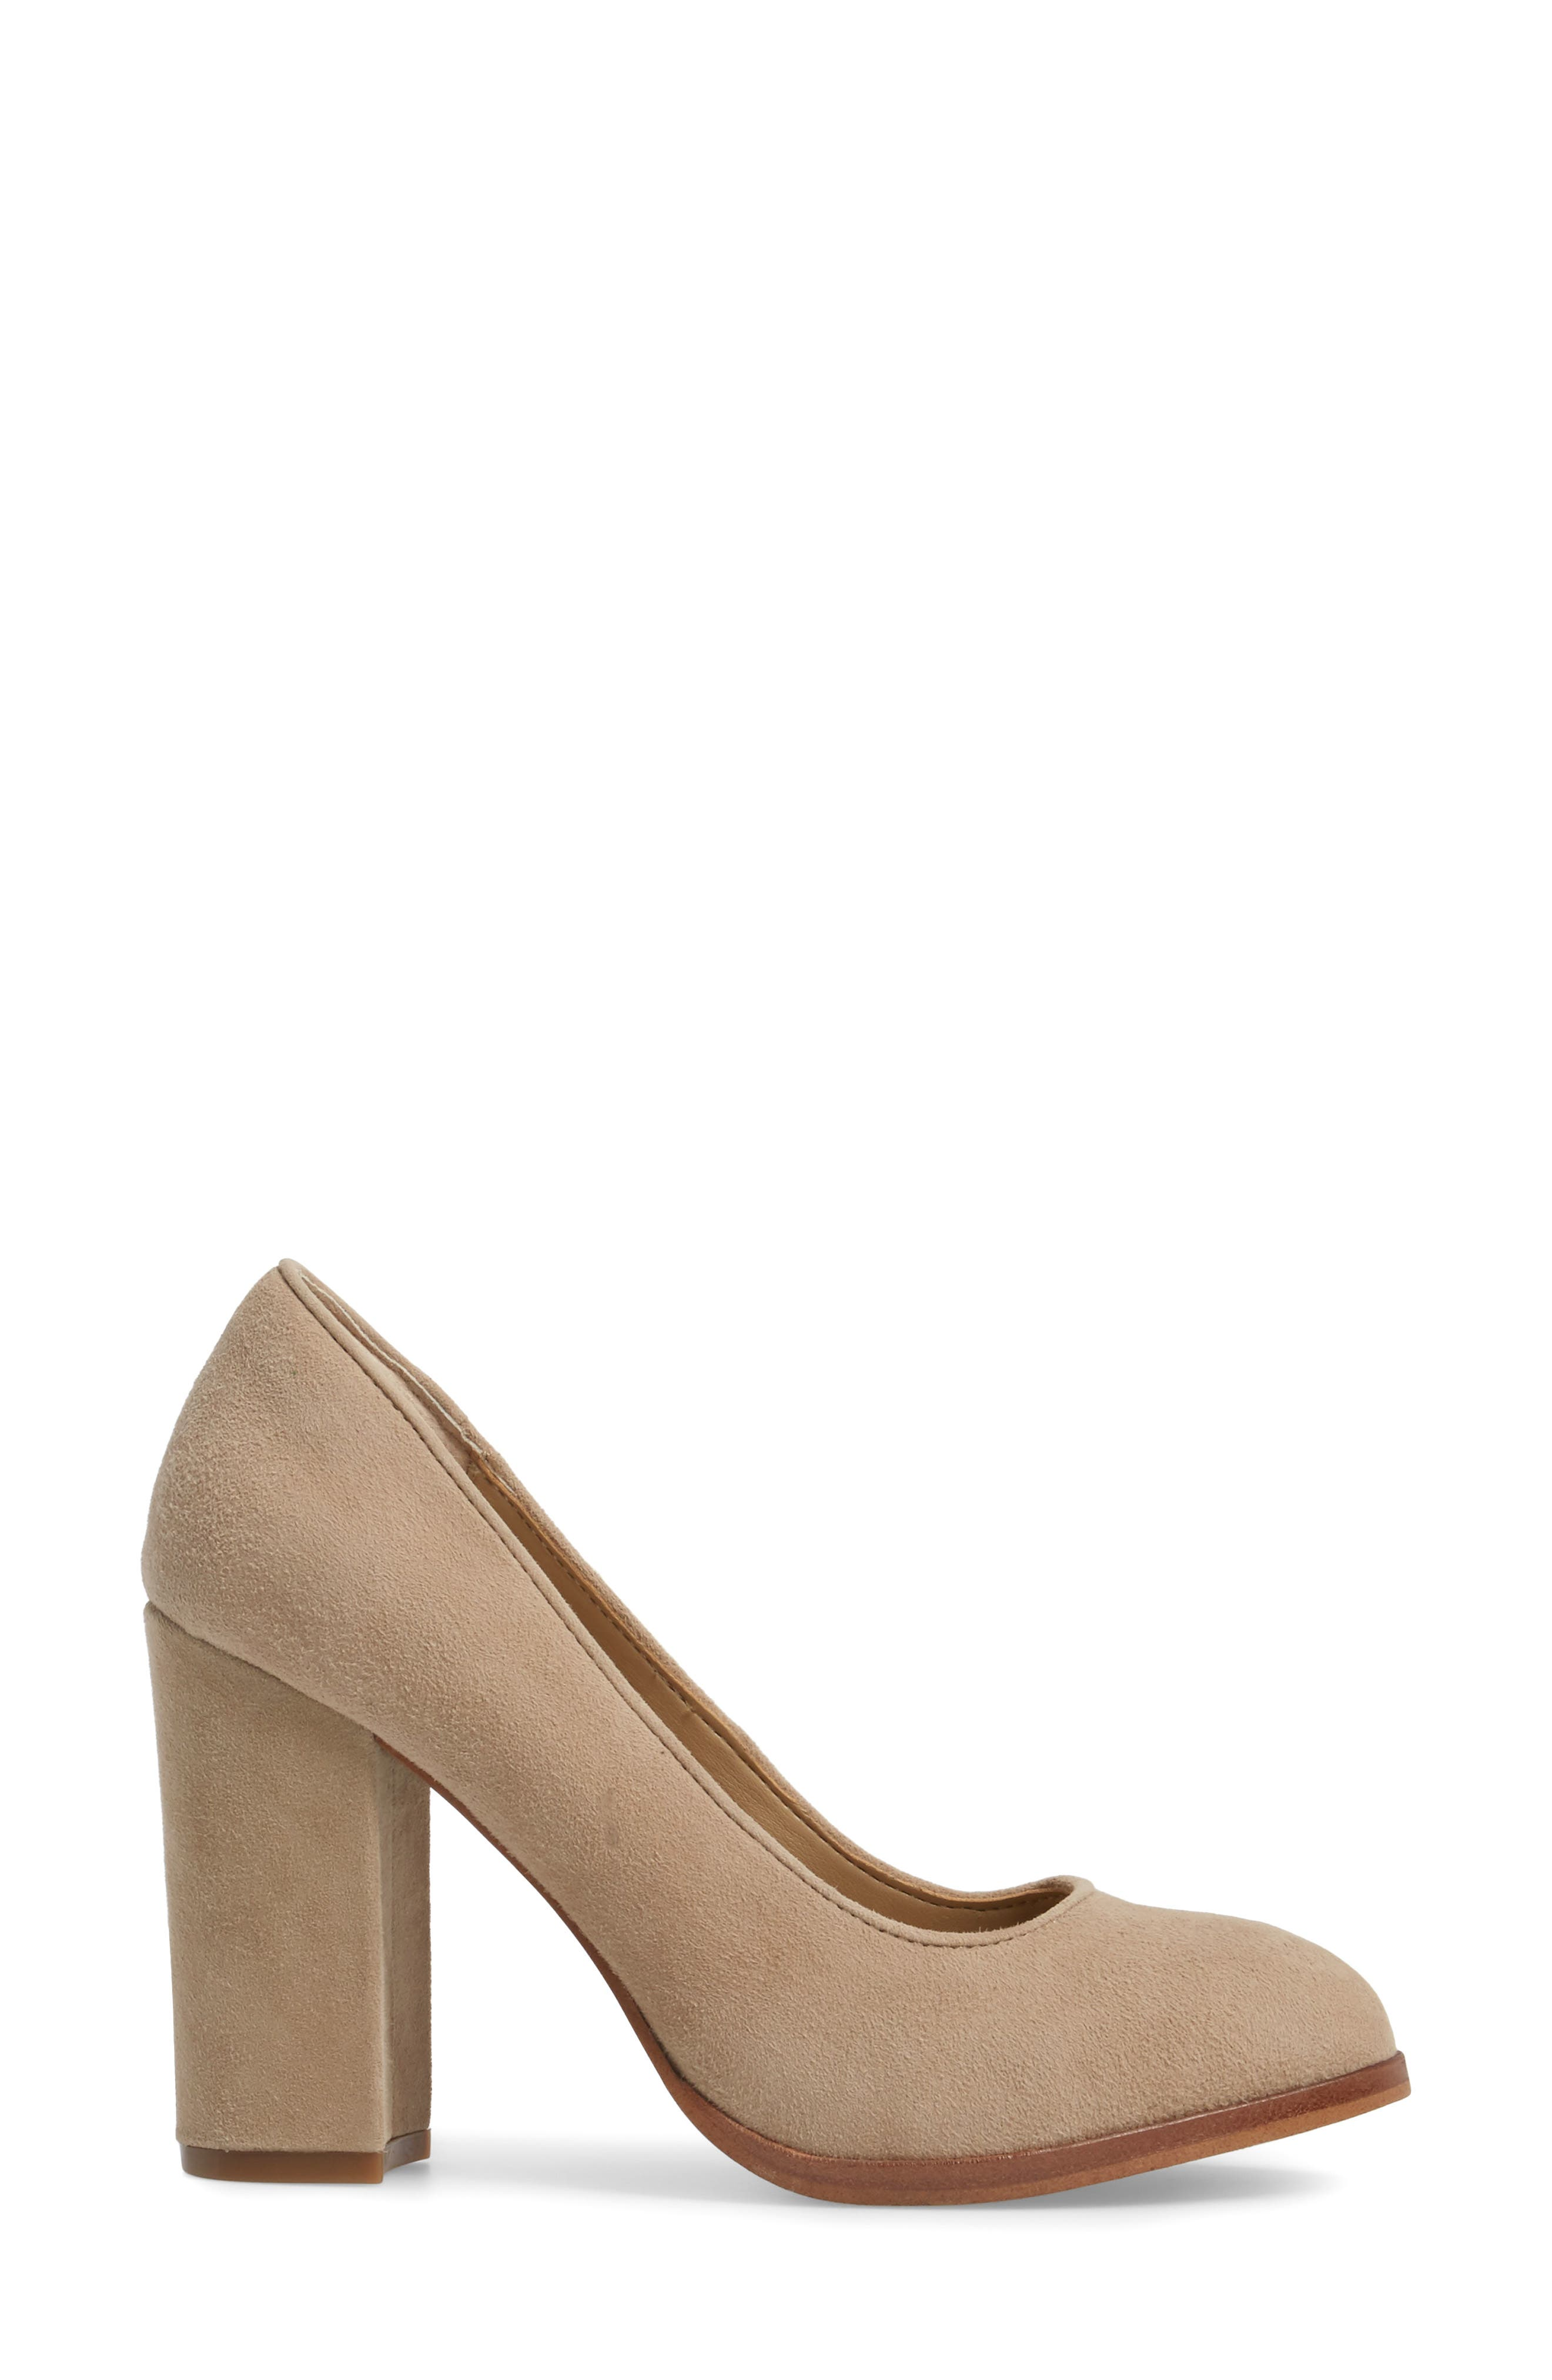 Hayley Pump,                             Alternate thumbnail 3, color,                             BAYWATER SUEDE